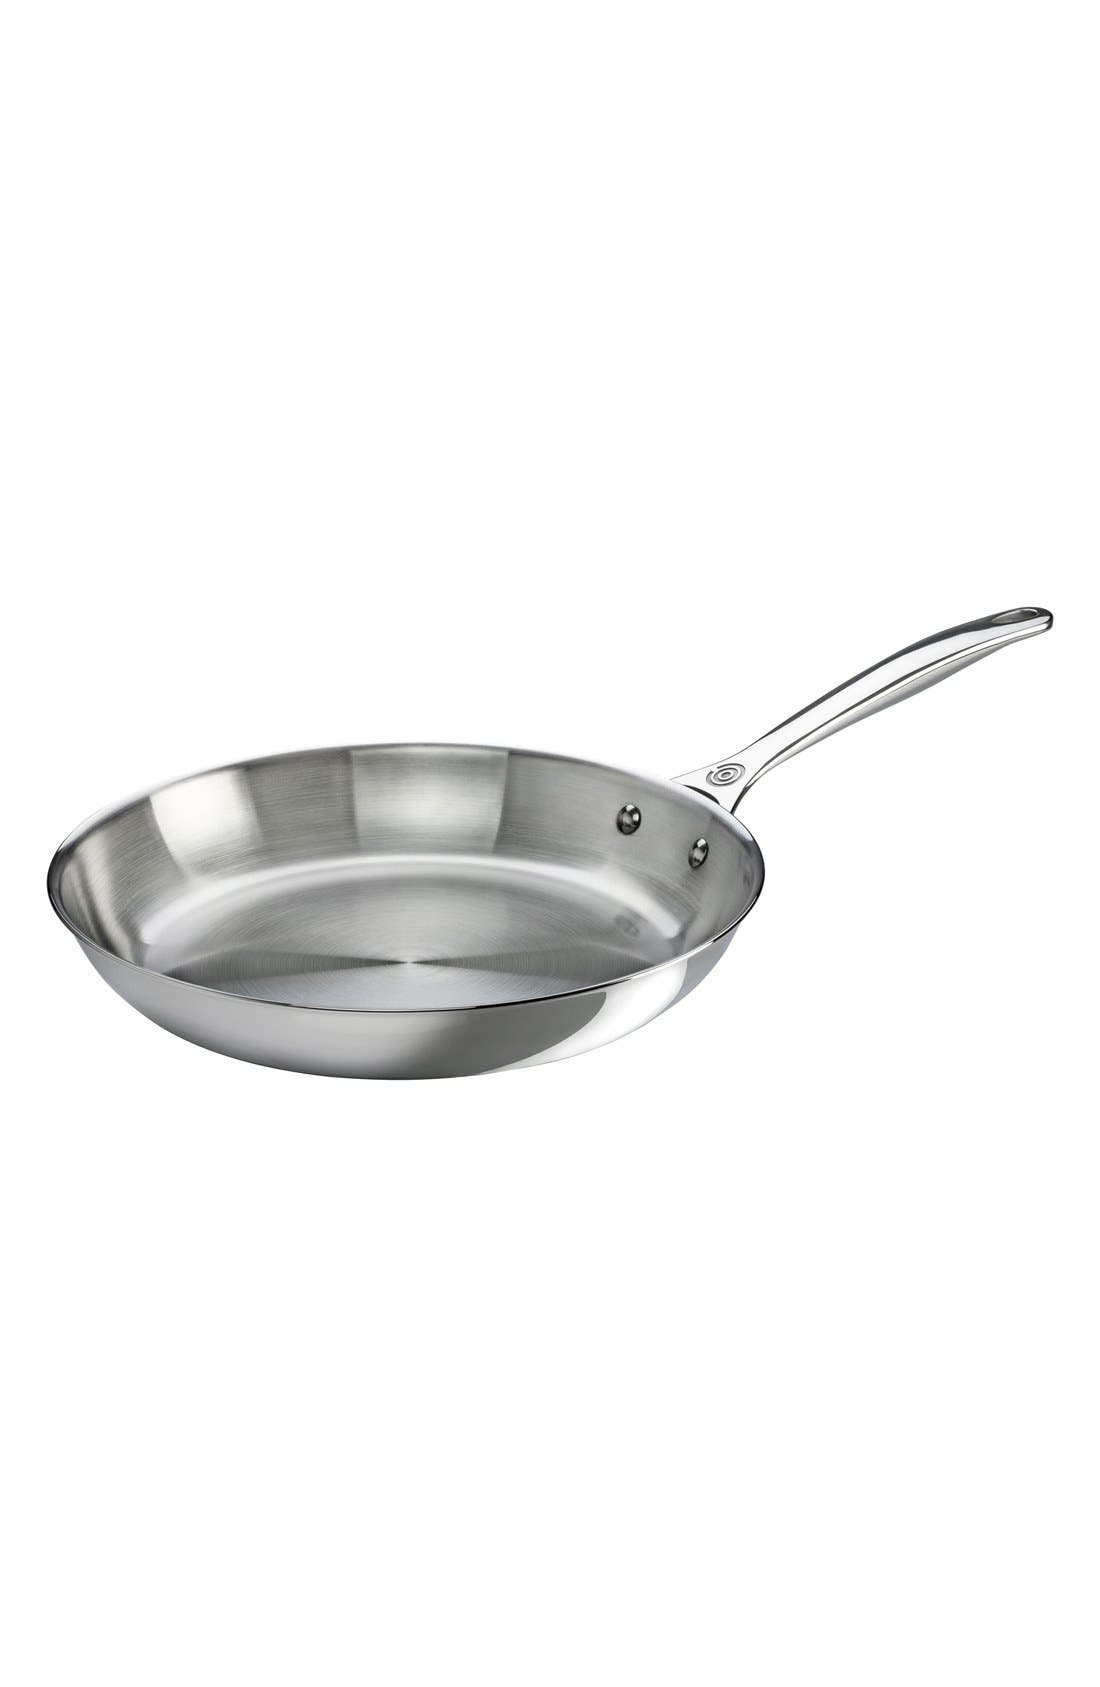 Main Image - Le Creuset 12 Inch Stainless Steel Fry Pan